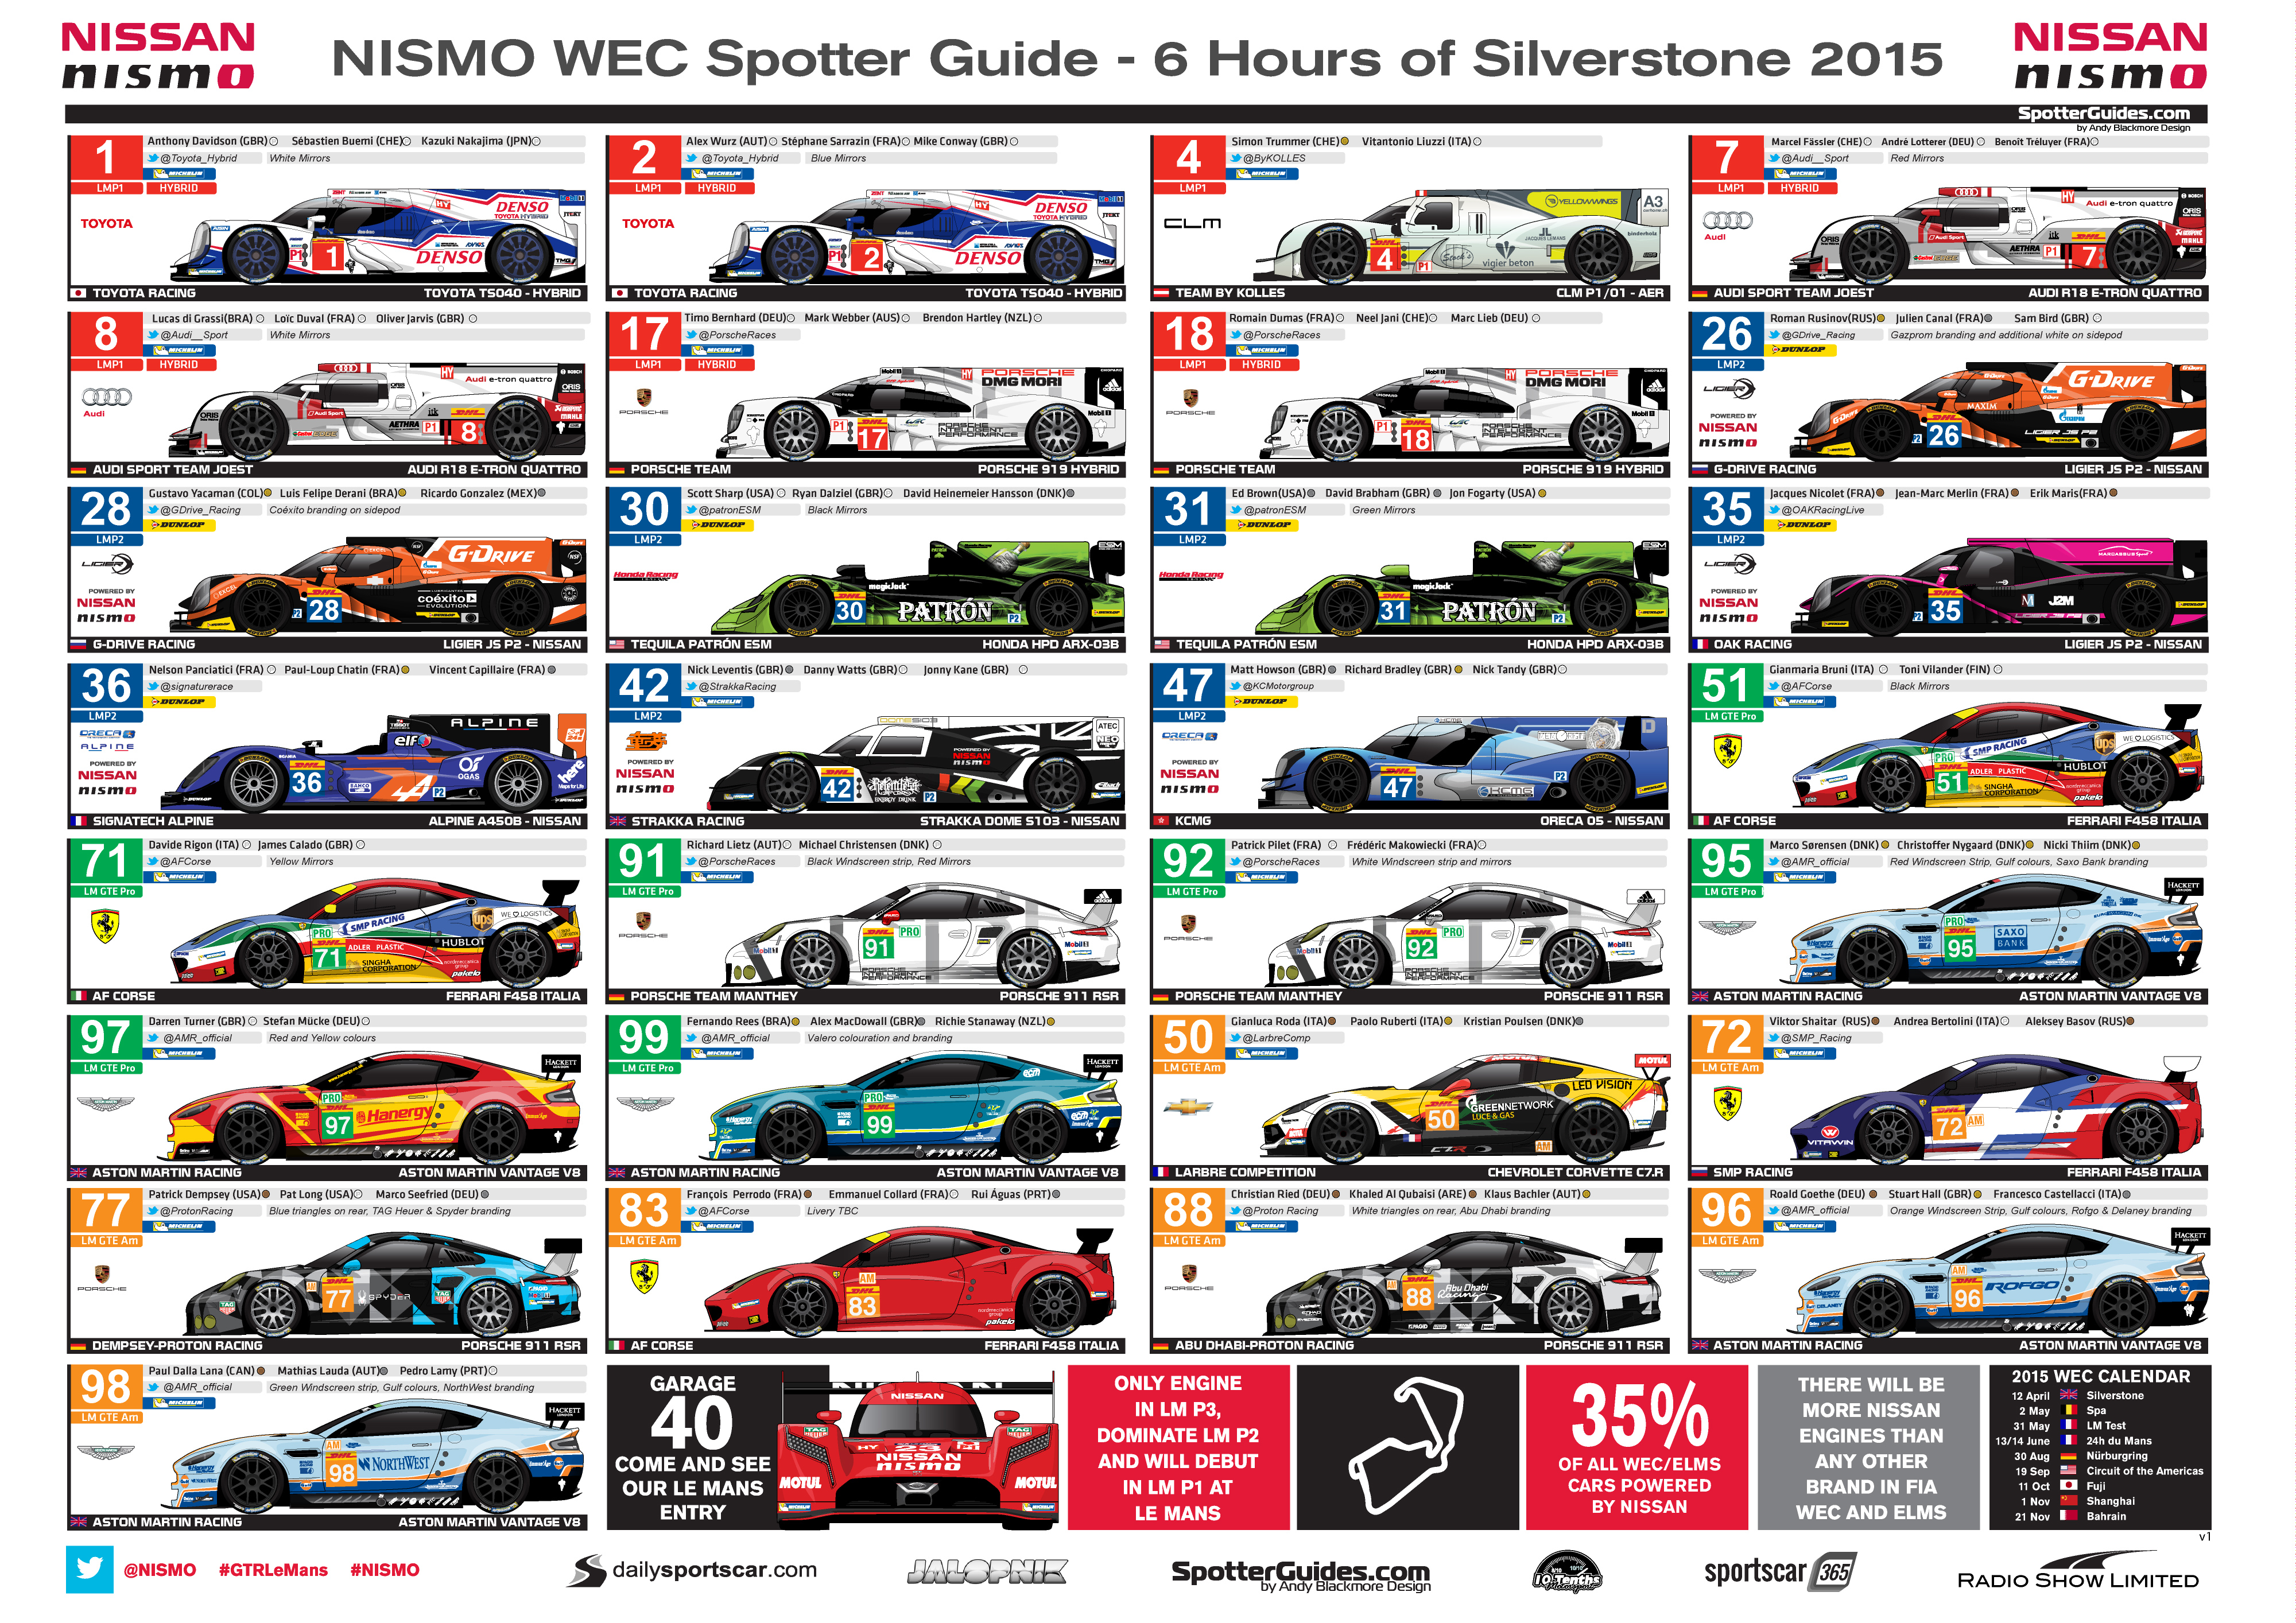 WEC 2015 6h Silverstone Spotter Guide Now Available - Fourtitude.com